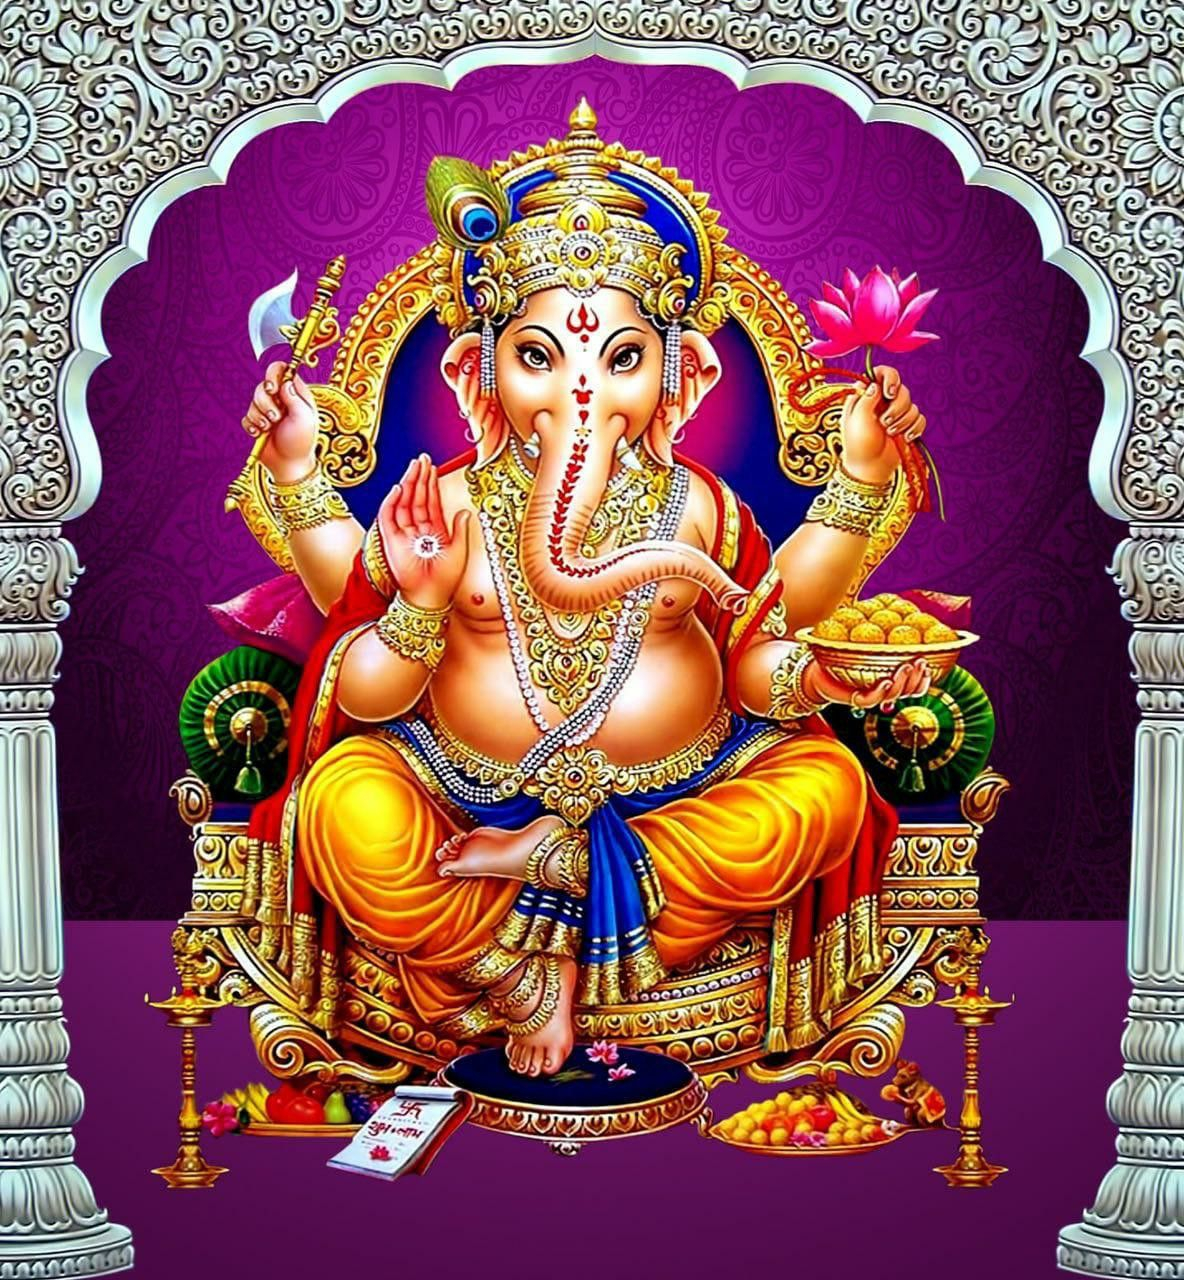 Pin by Krishna on Lord Ganesha in 2020 (With images ...